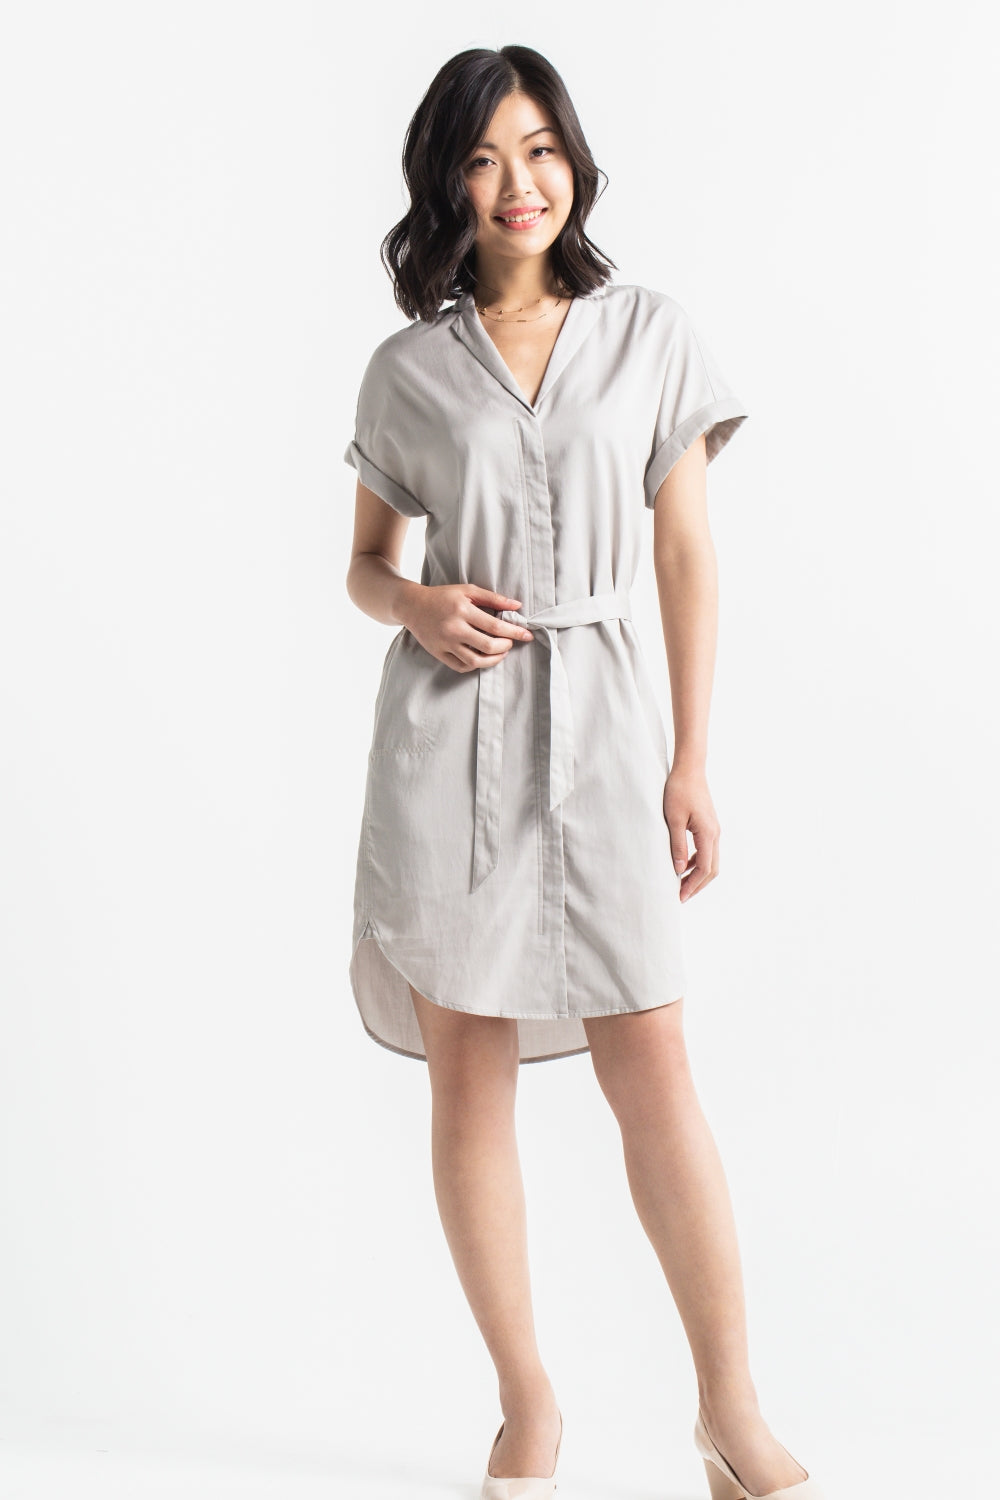 Cap Sleeve Shirtdress - Zen Grey